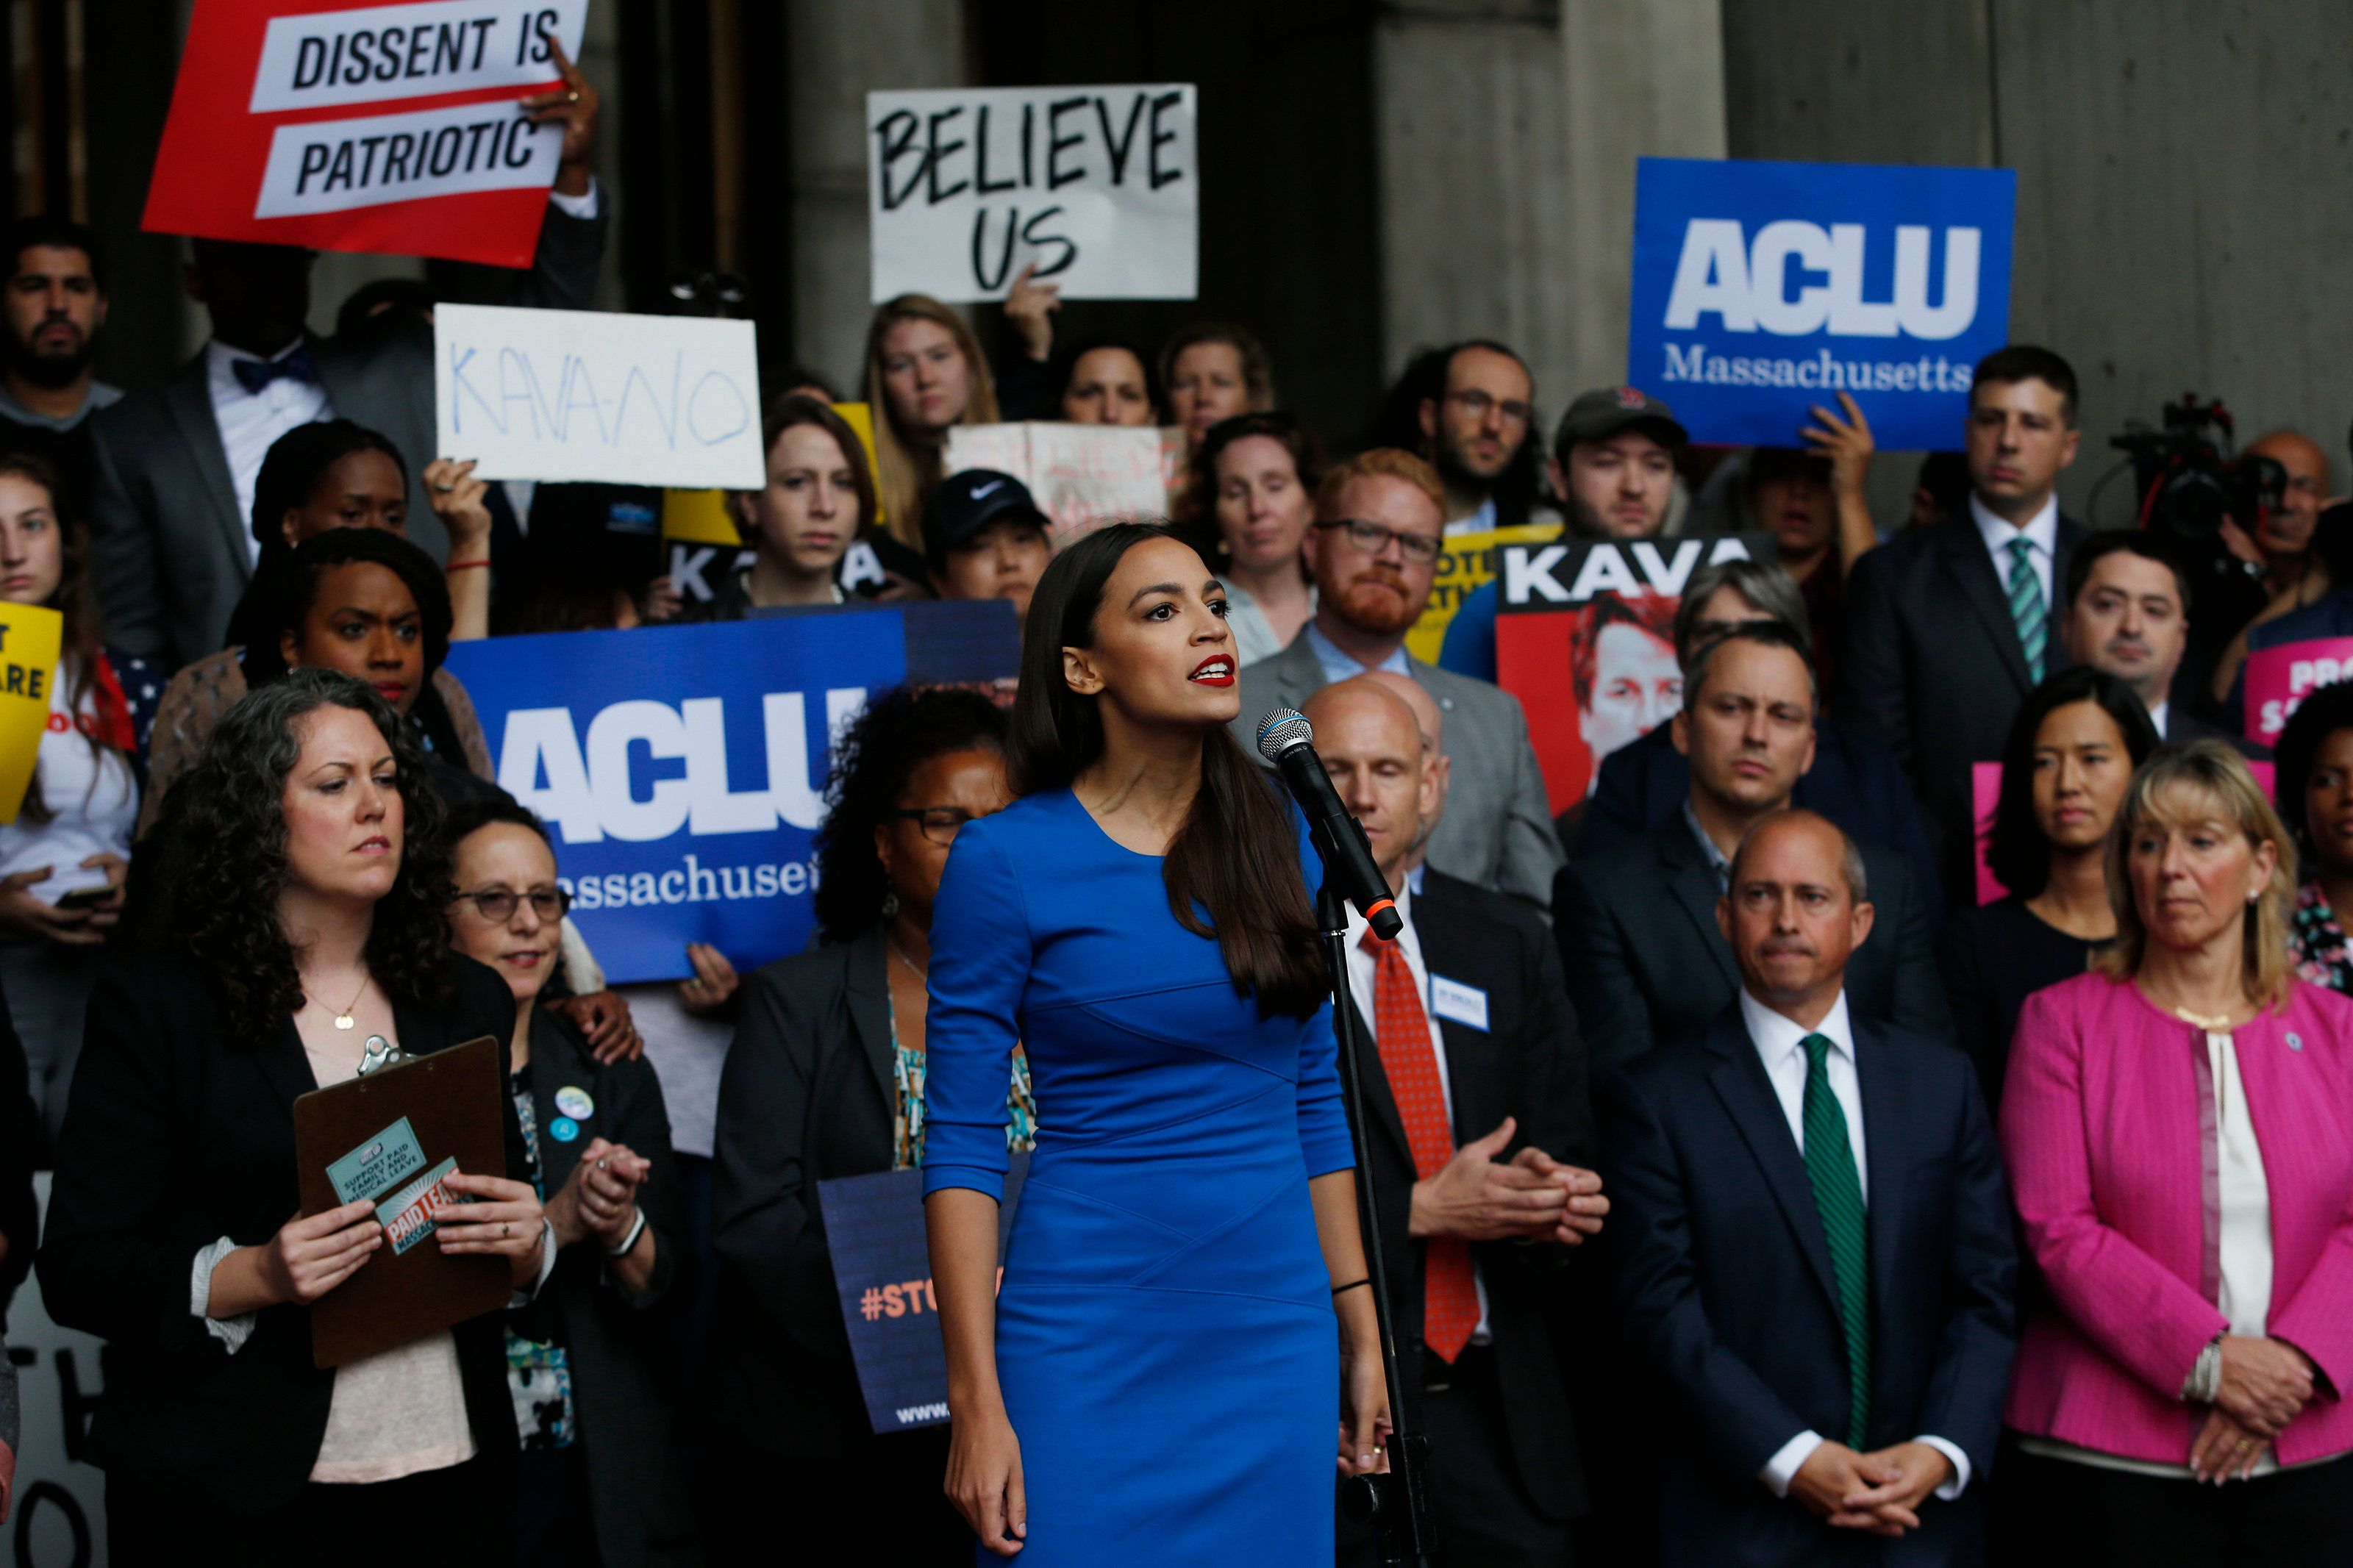 Alexandria Ocasio-Cortez at 29 is the youngest woman ever elected to Congress